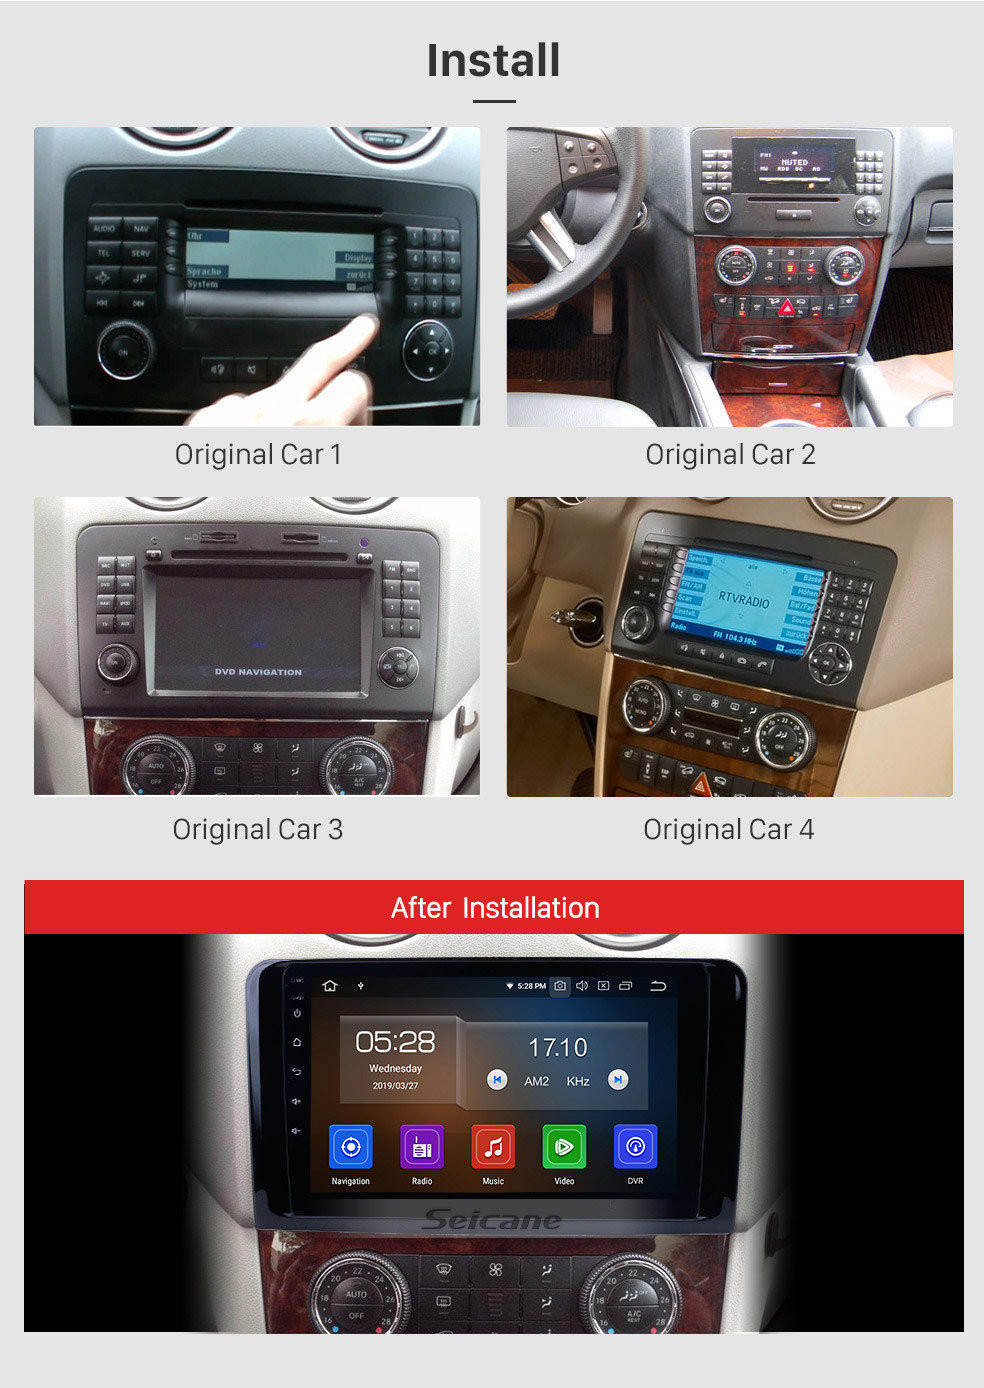 Seicane 2005-2012 Mercedes Benz GL CLASS X164   GL320 GL350 GL420 GL450G L500 Radio Removal with Android 10.0 GPS Navigation Stereo 1024*600 Multi-touch Capacitive Screen DVD Mirror Link OBD2 Bluetooth 4G WiFi